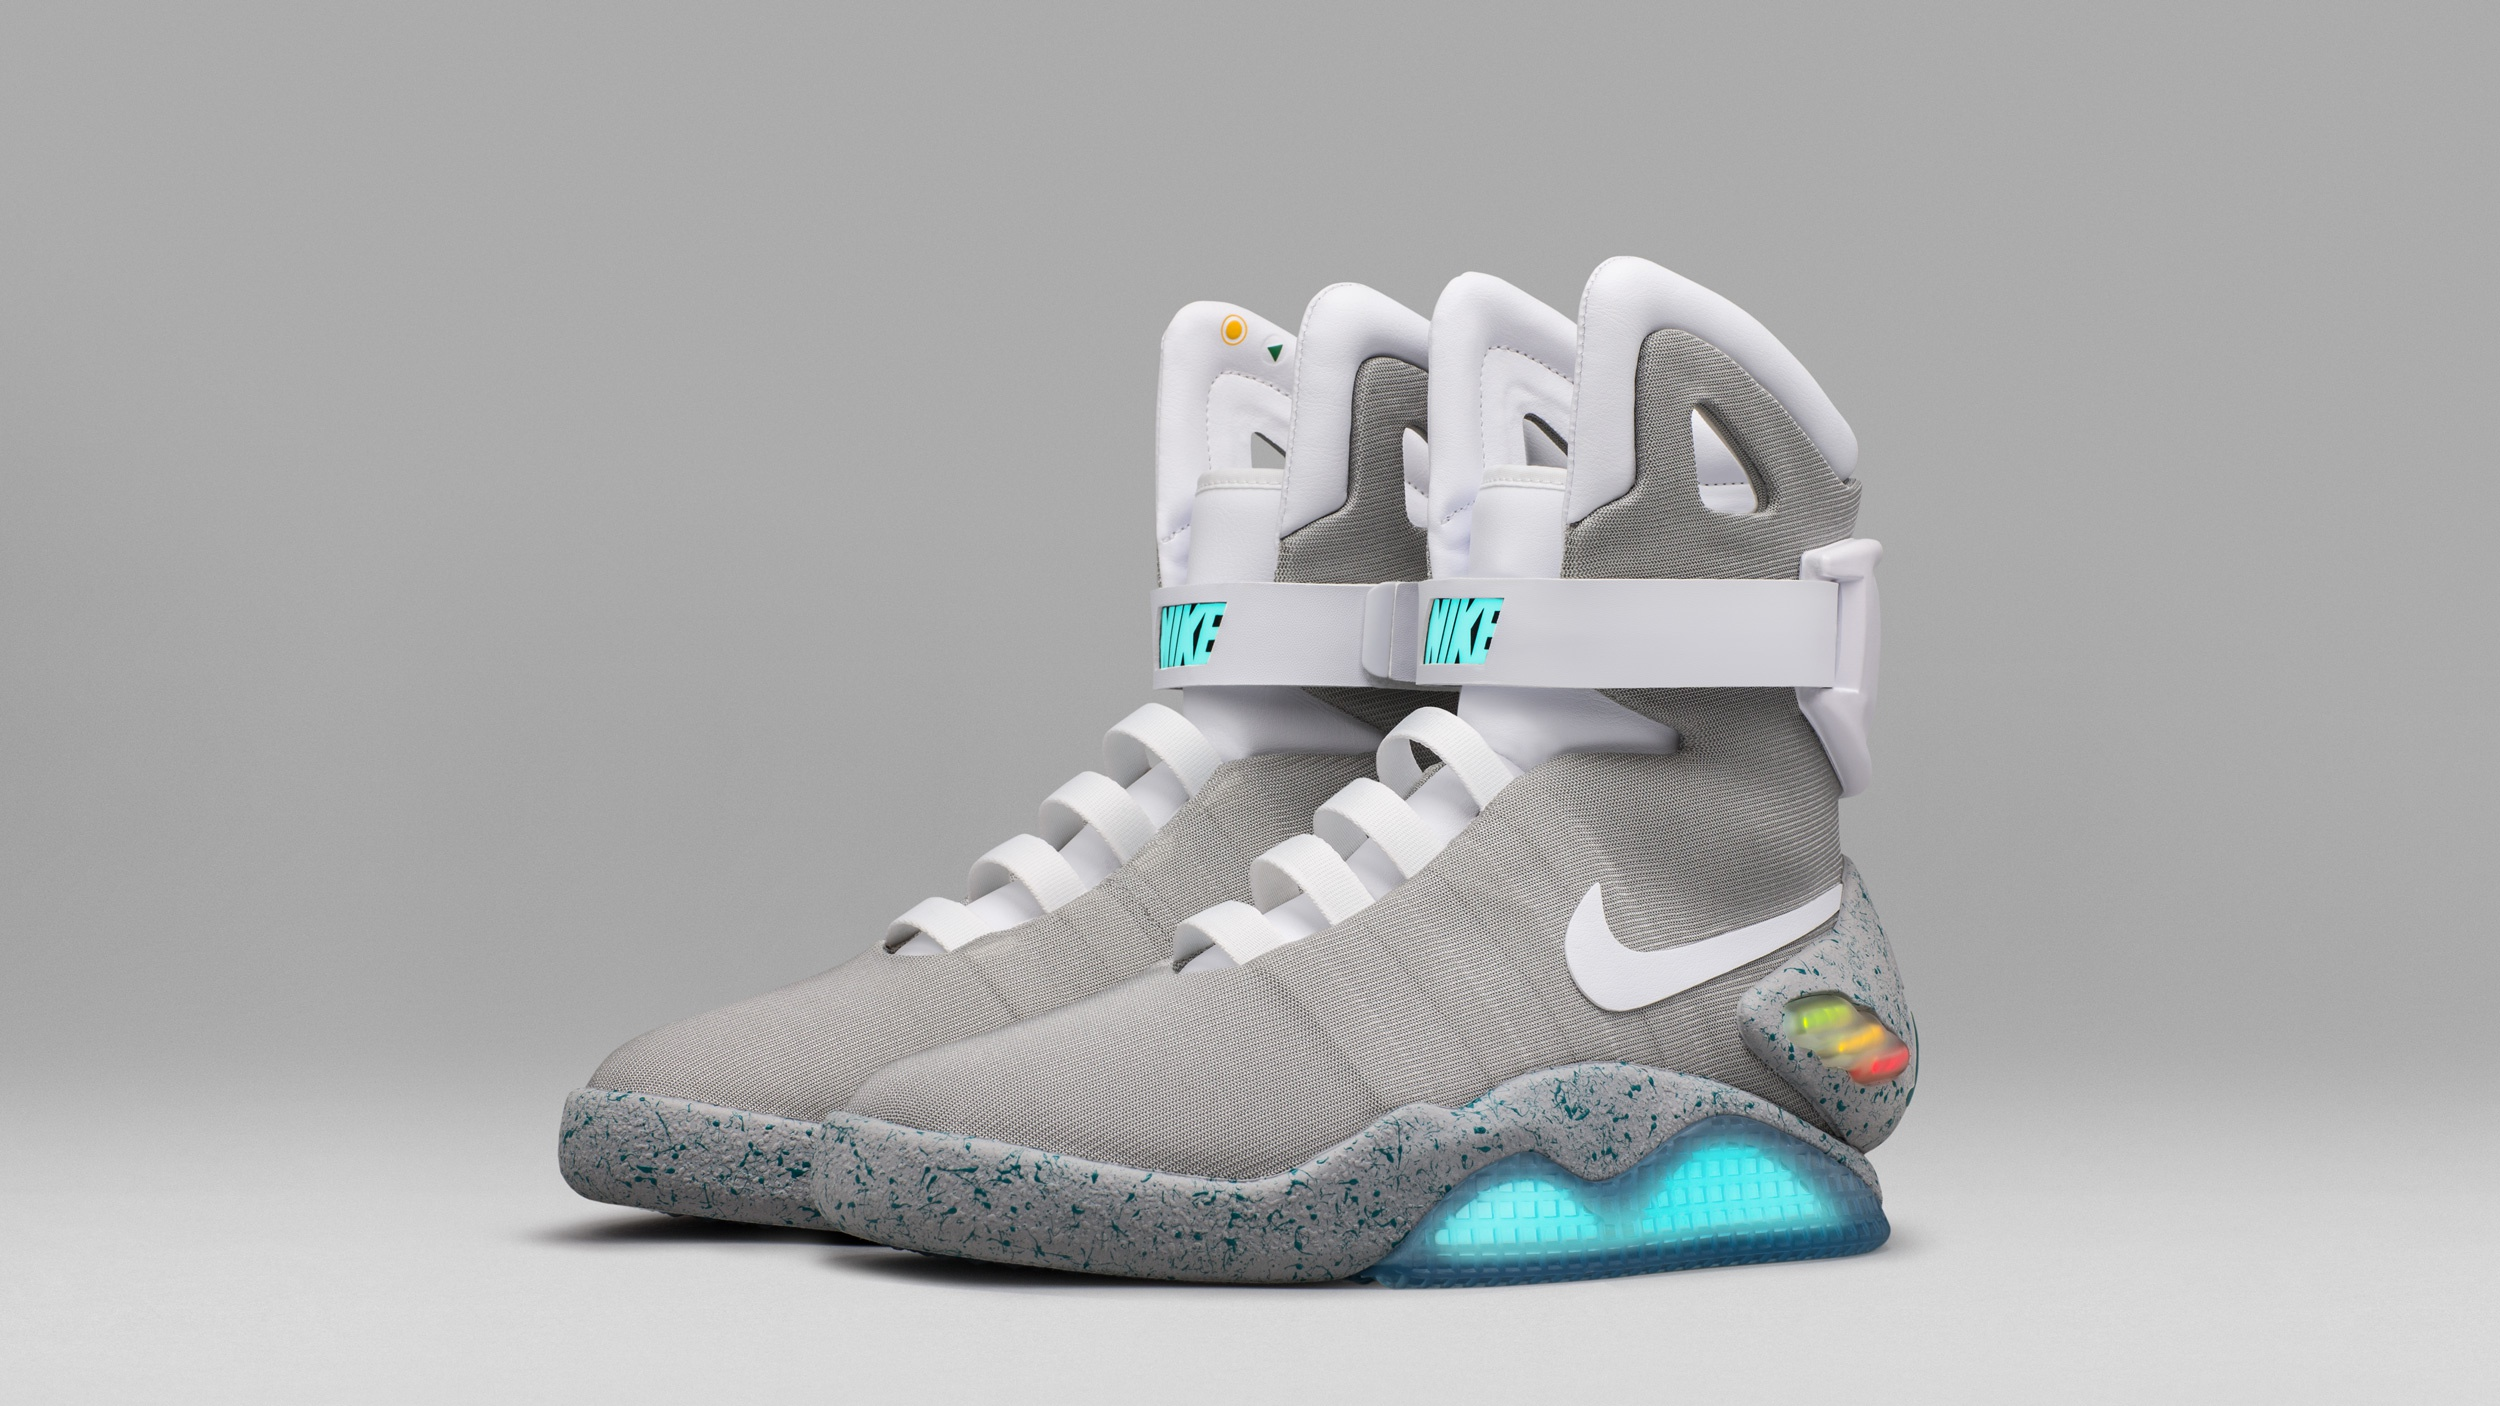 gimmick. Then I tried on the Nike Mag